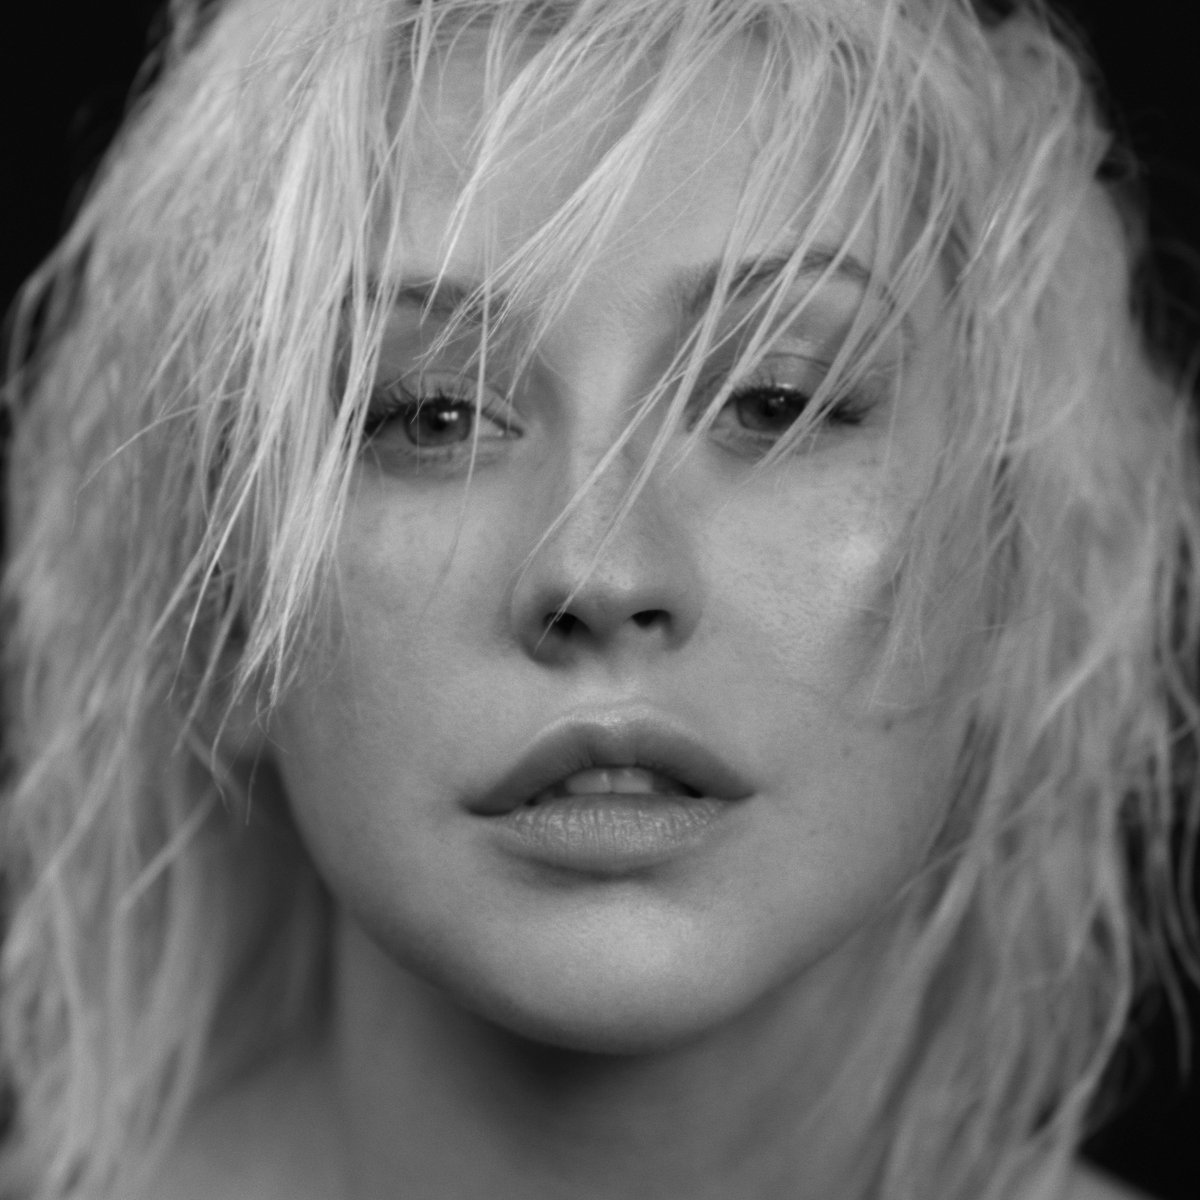 Twitter Christina Aguilera naked (33 photos), Topless, Sideboobs, Feet, cleavage 2019